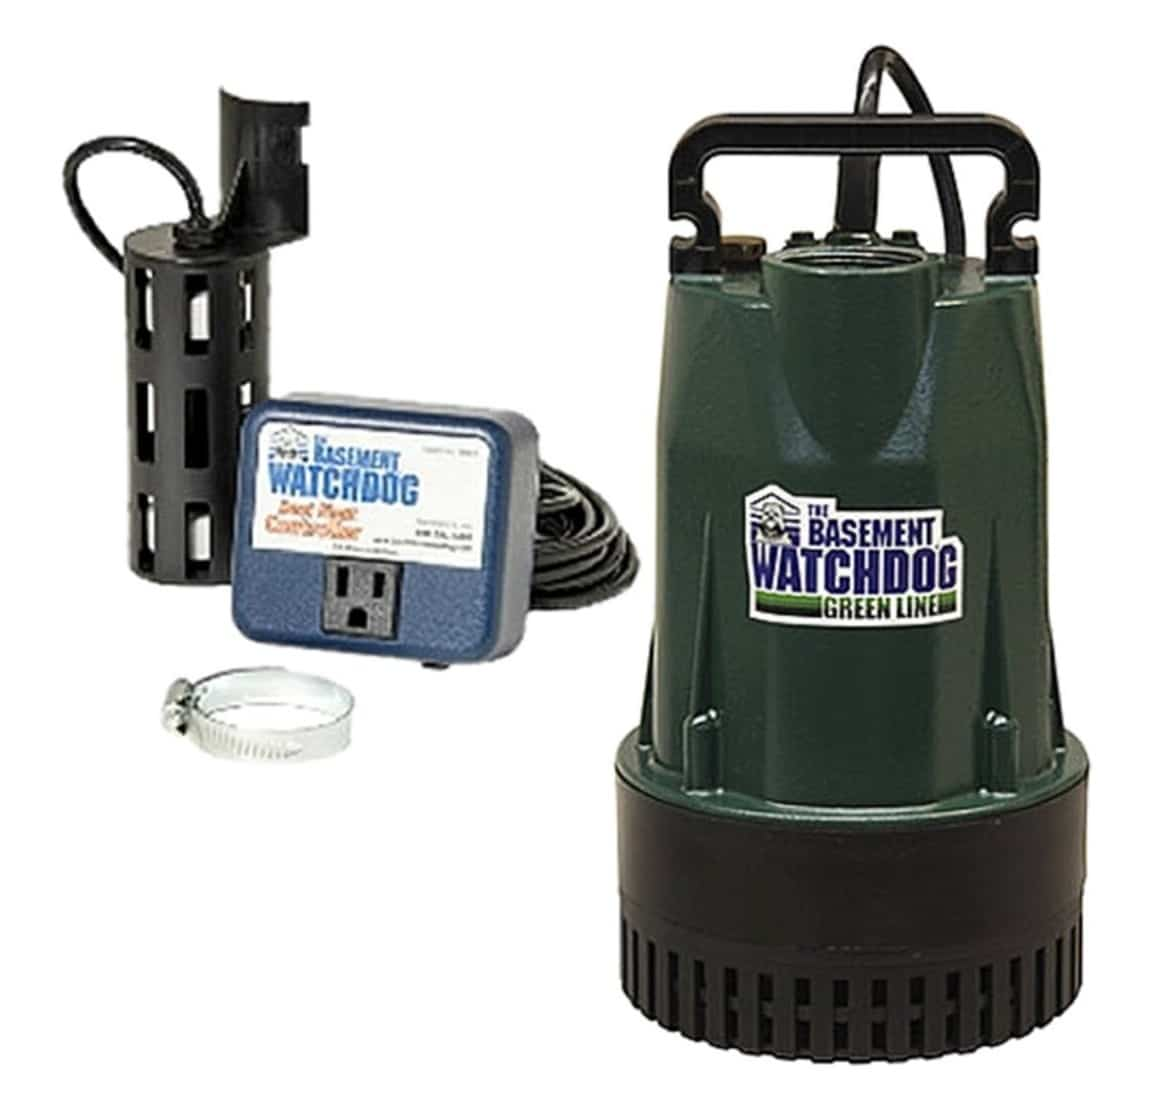 Basement Watchdog BW1050 Sump Pump Reviews